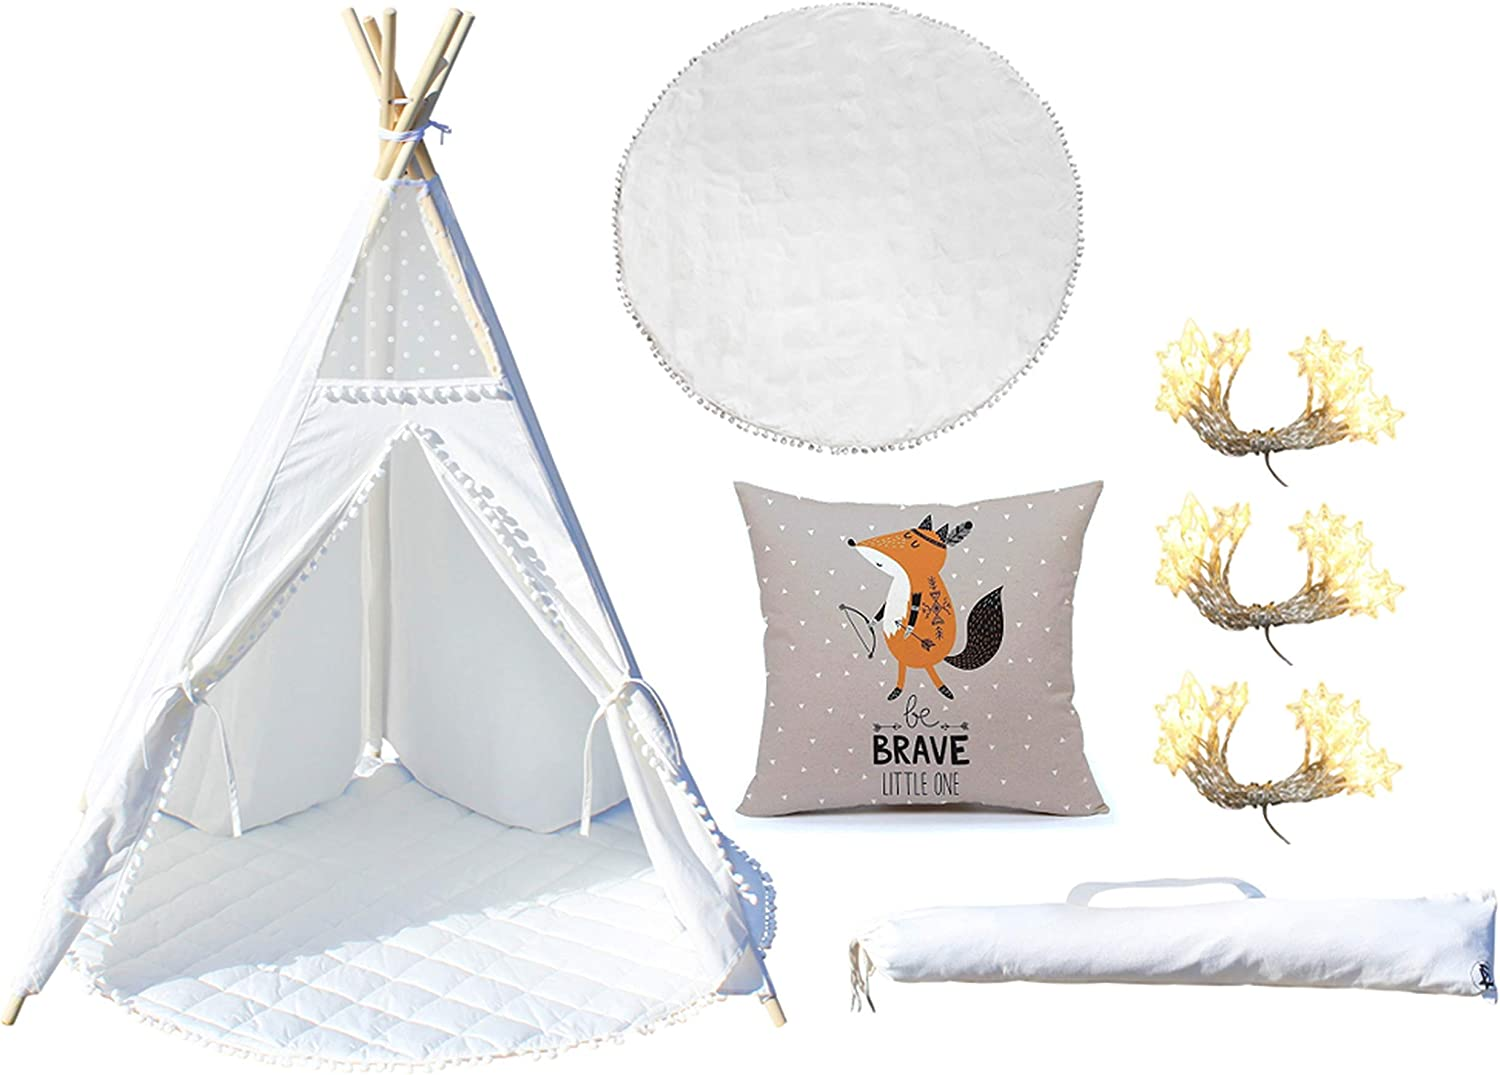 UpscaleHD Teepee Tent for Kids Includes Carry Case, Cotton Mat, Indian Fox Throw Pillow, Star Fairy String Lights, Five Wooden Poles & Anti Slip Silicone Sleeves  100% Foldable White Cotton Canvas